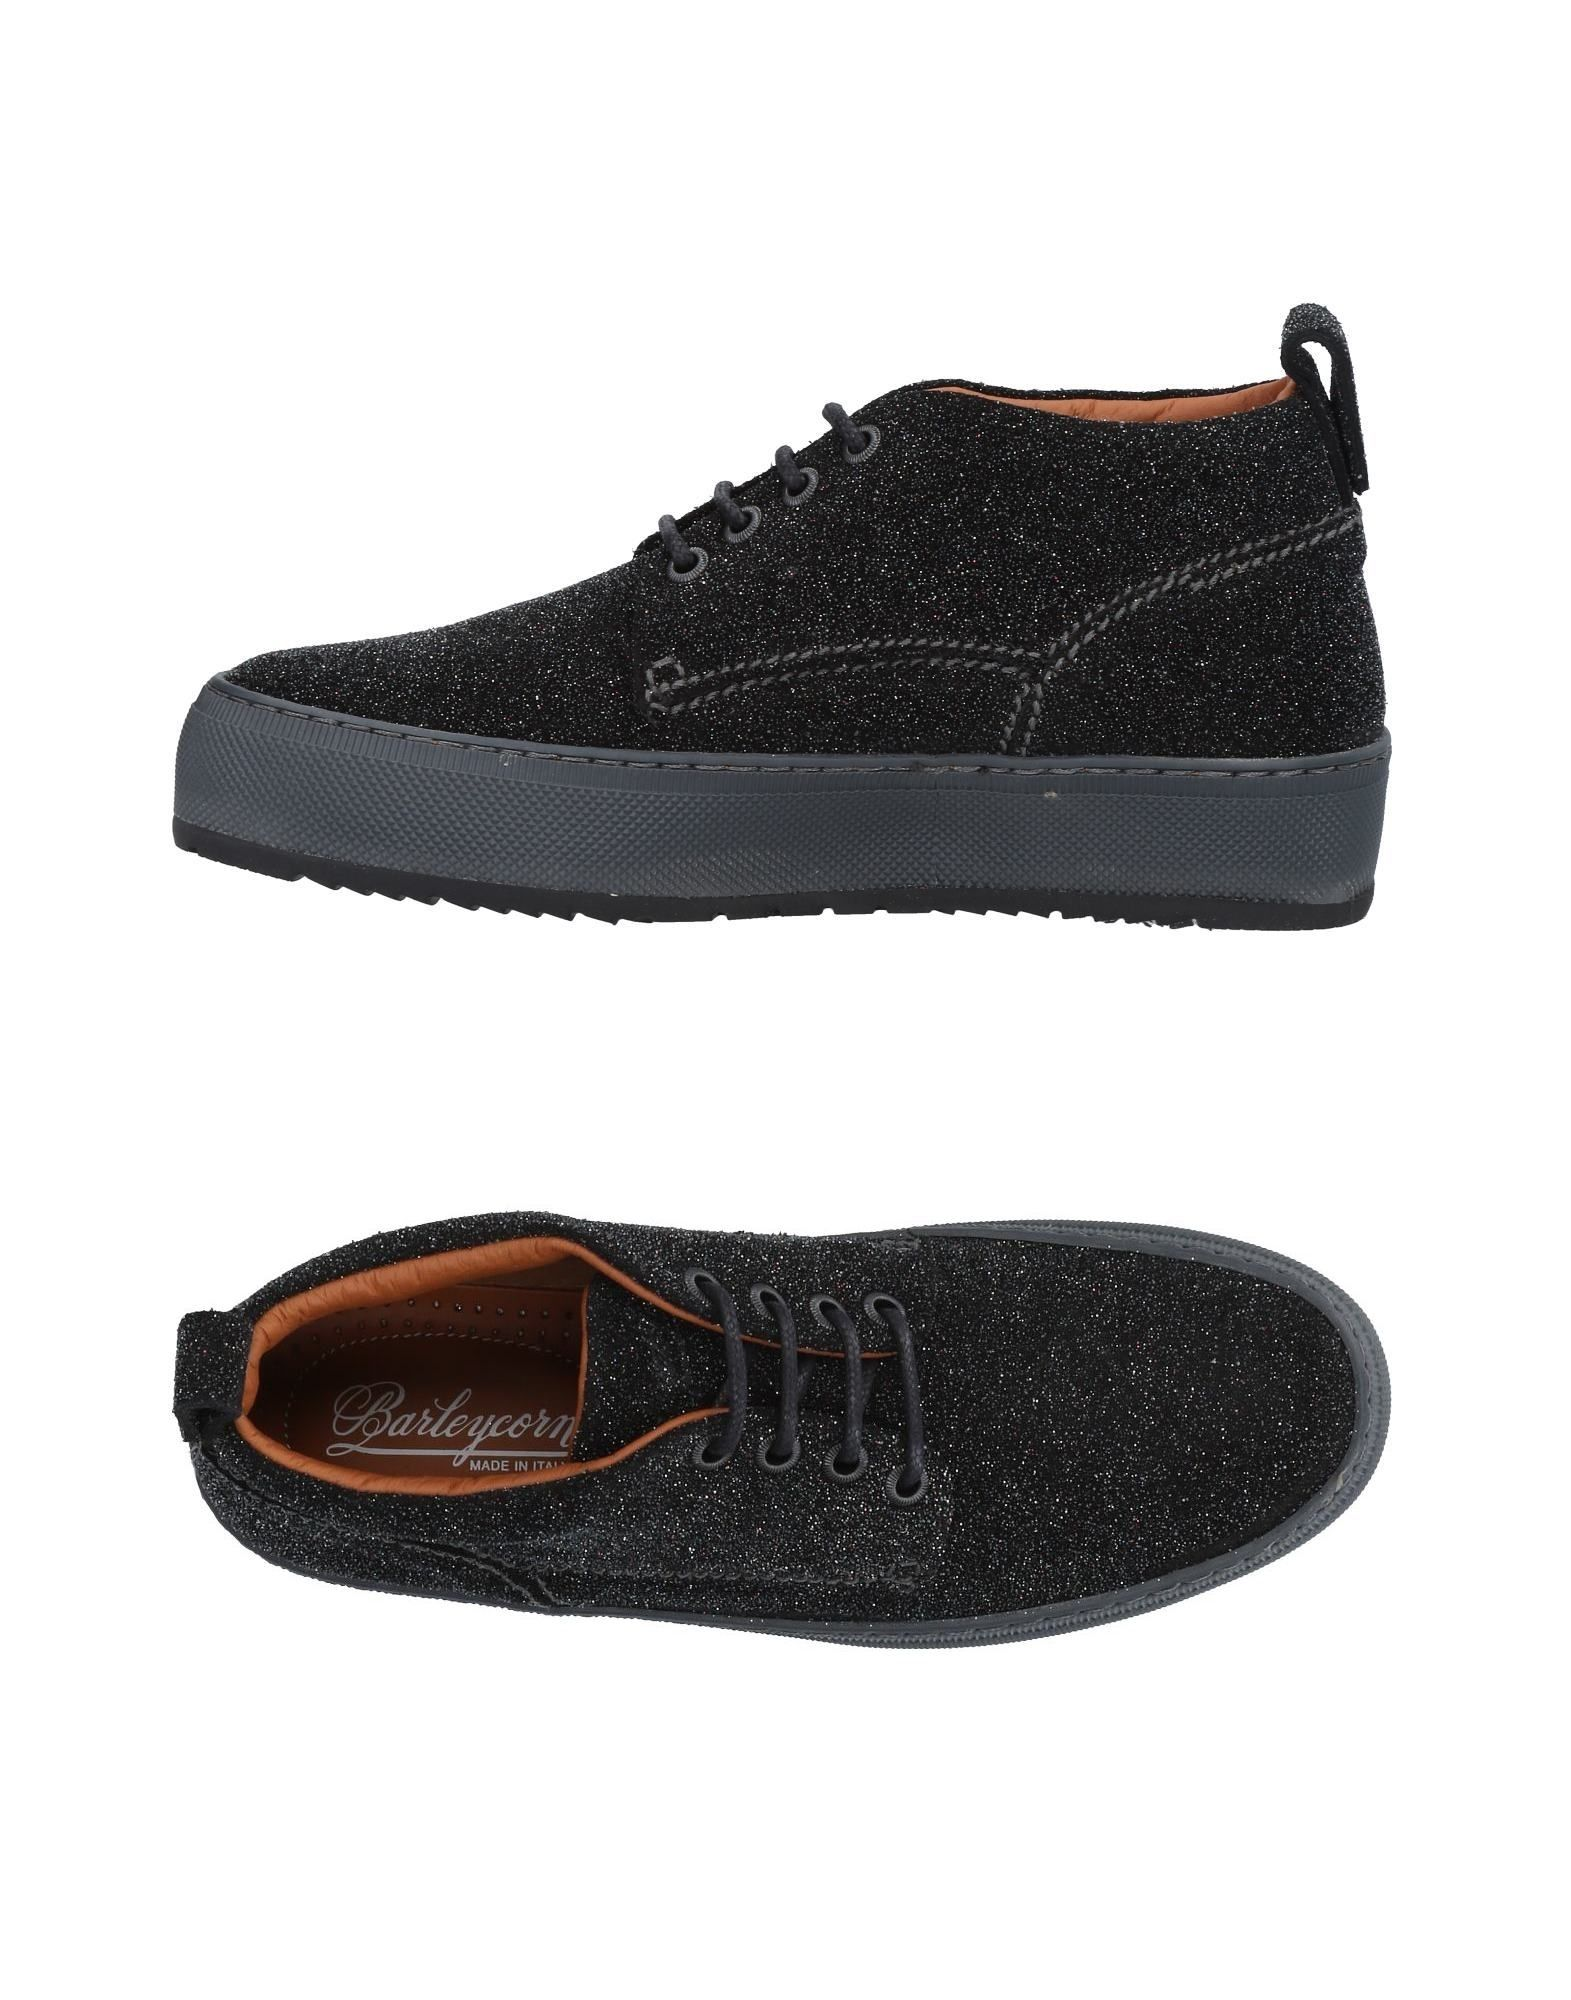 A buon mercato Sneakers Barleycorn Donna - 11479228OW